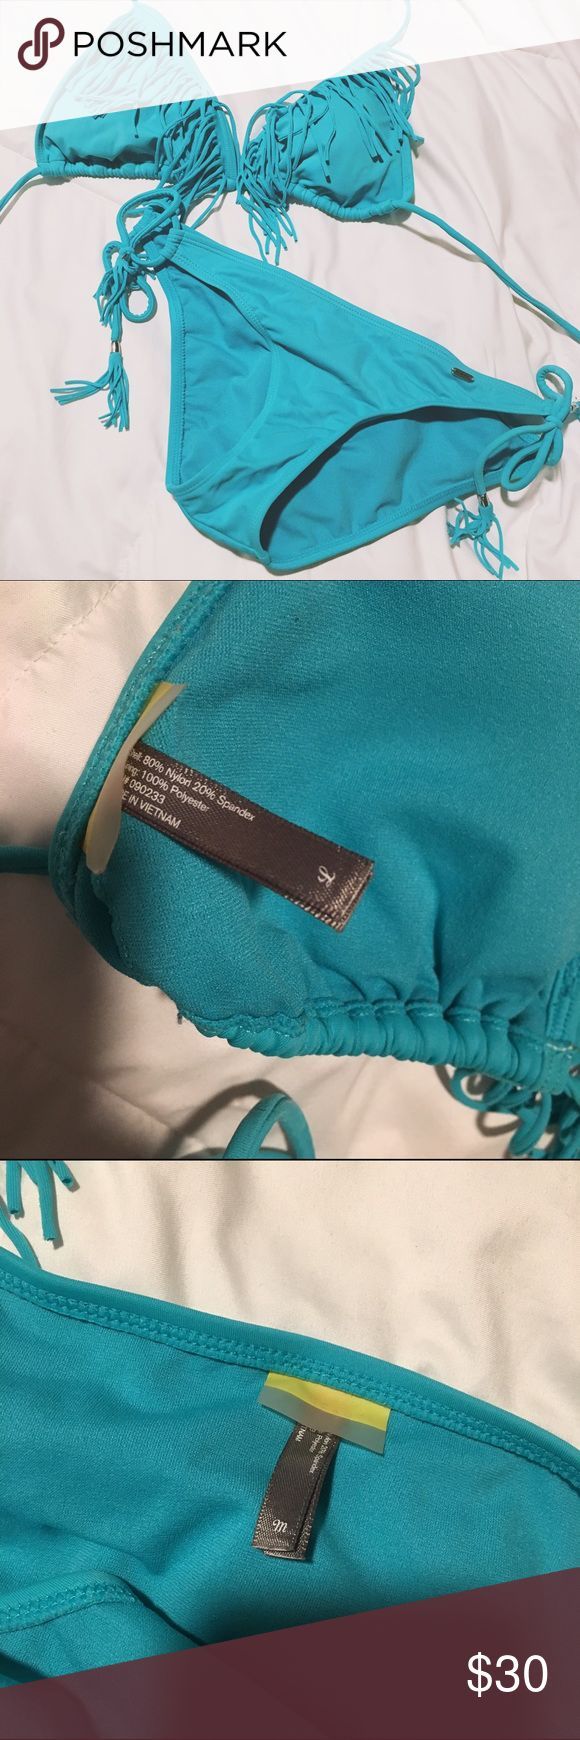 LA Hearts Teal Fringe Bikini Super cute teal fringe bikini by LA hearts. worn and washed once. Runs small - top is a large and I am a D Cup and it's way too small. Would fit a B or C. Bottoms are a medium but would fit a small! LA Hearts Swim Bikinis